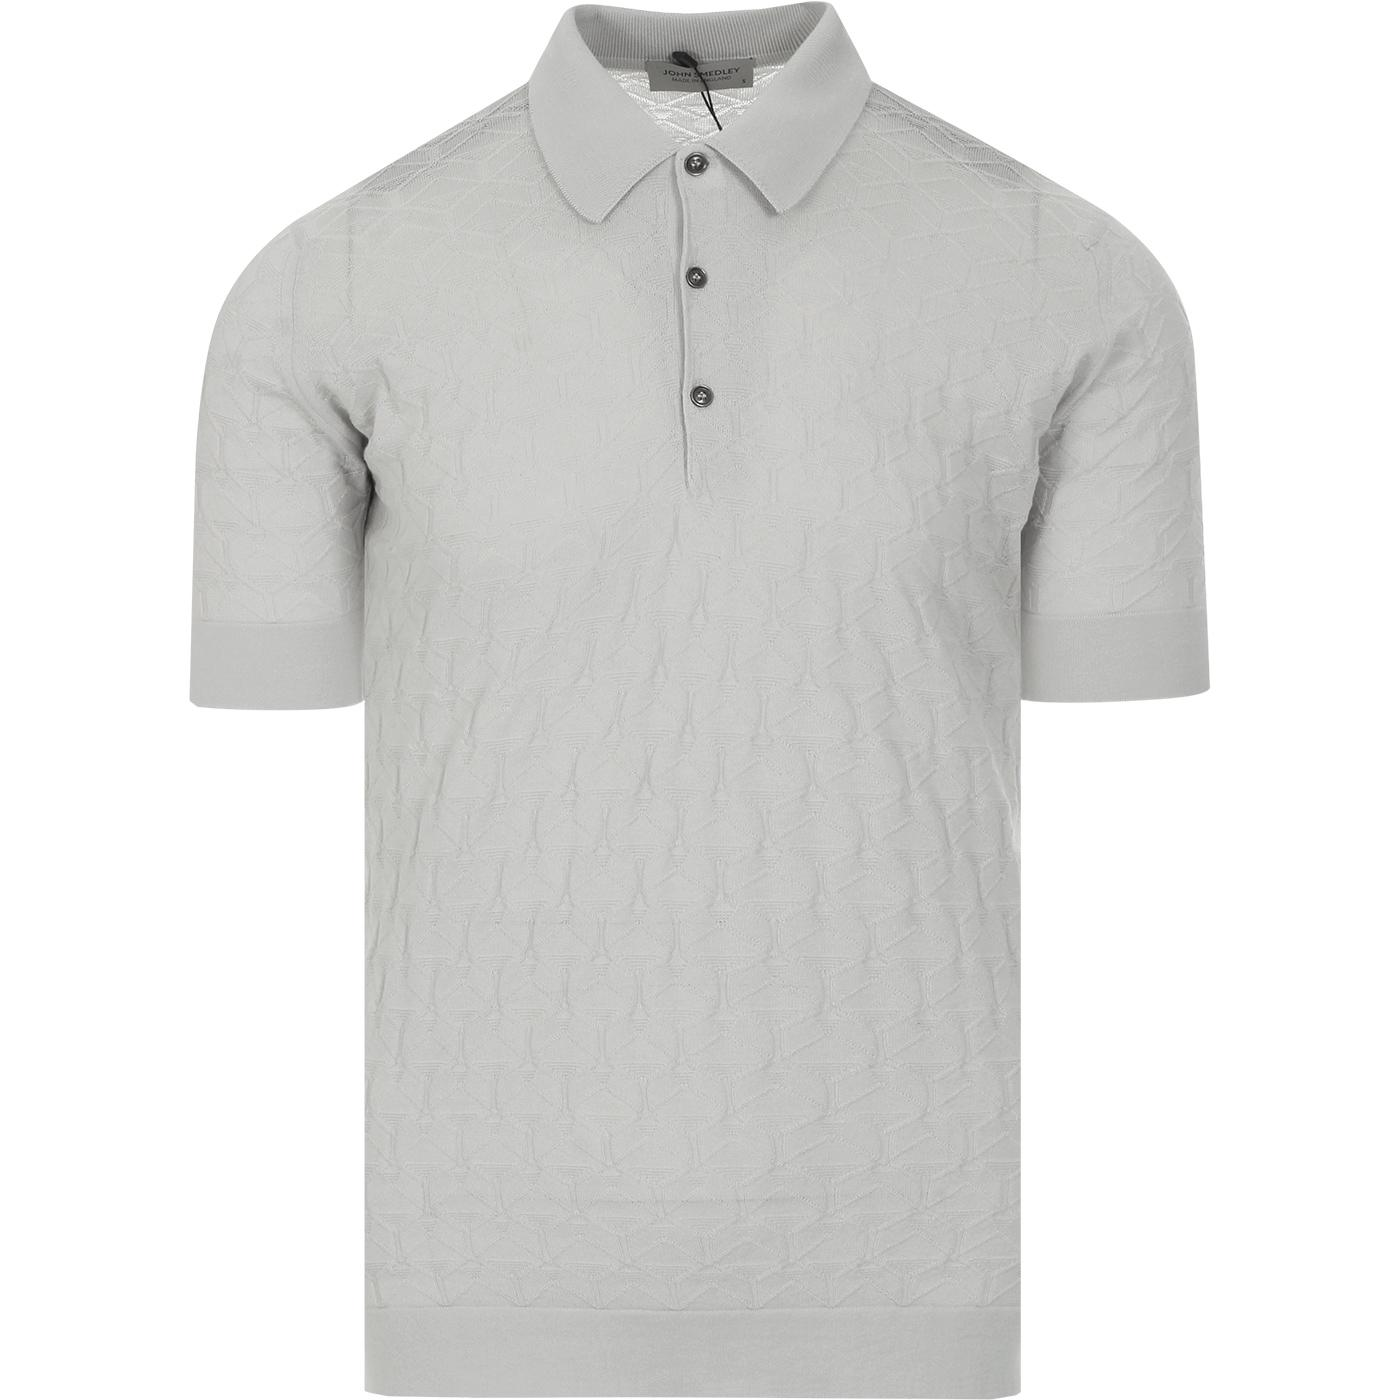 Forestry JOHN SMEDLEY Geo Textured Polo Shirt (C)